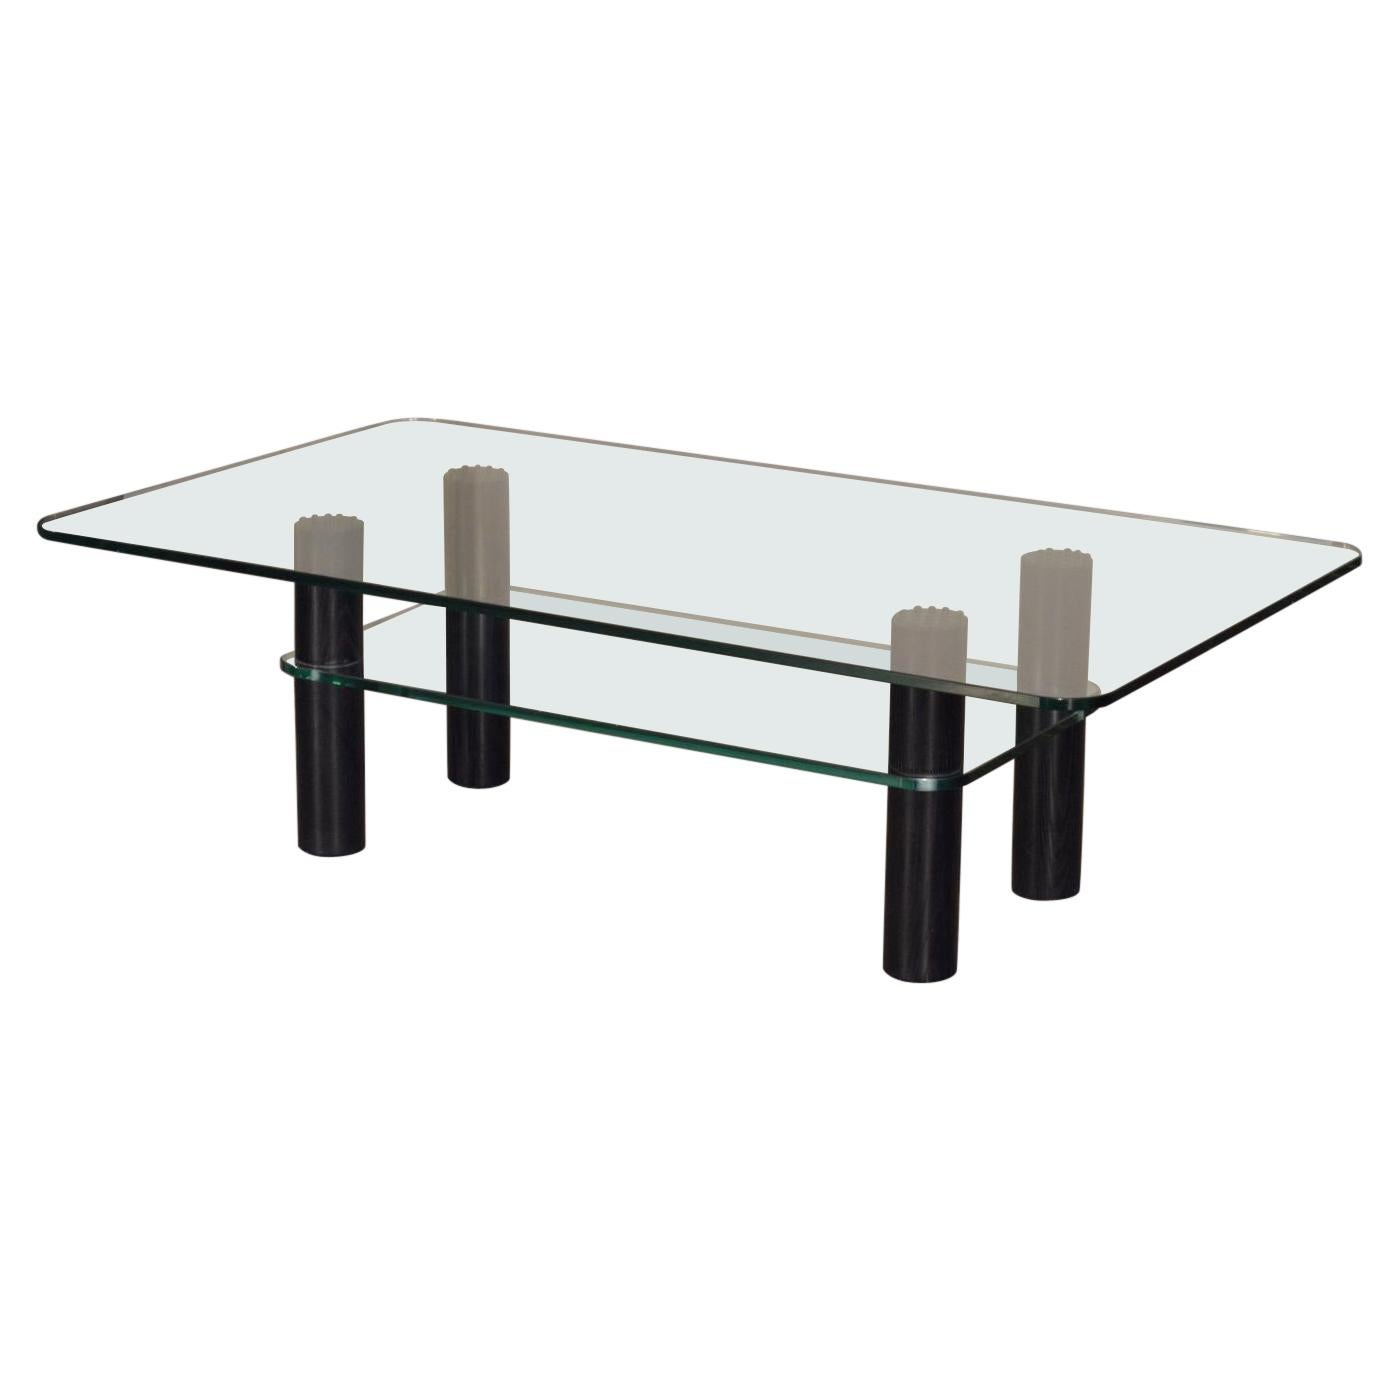 Alessi Post-Modern Glass, Wood, and Rubber Coffee Table c. 1980's